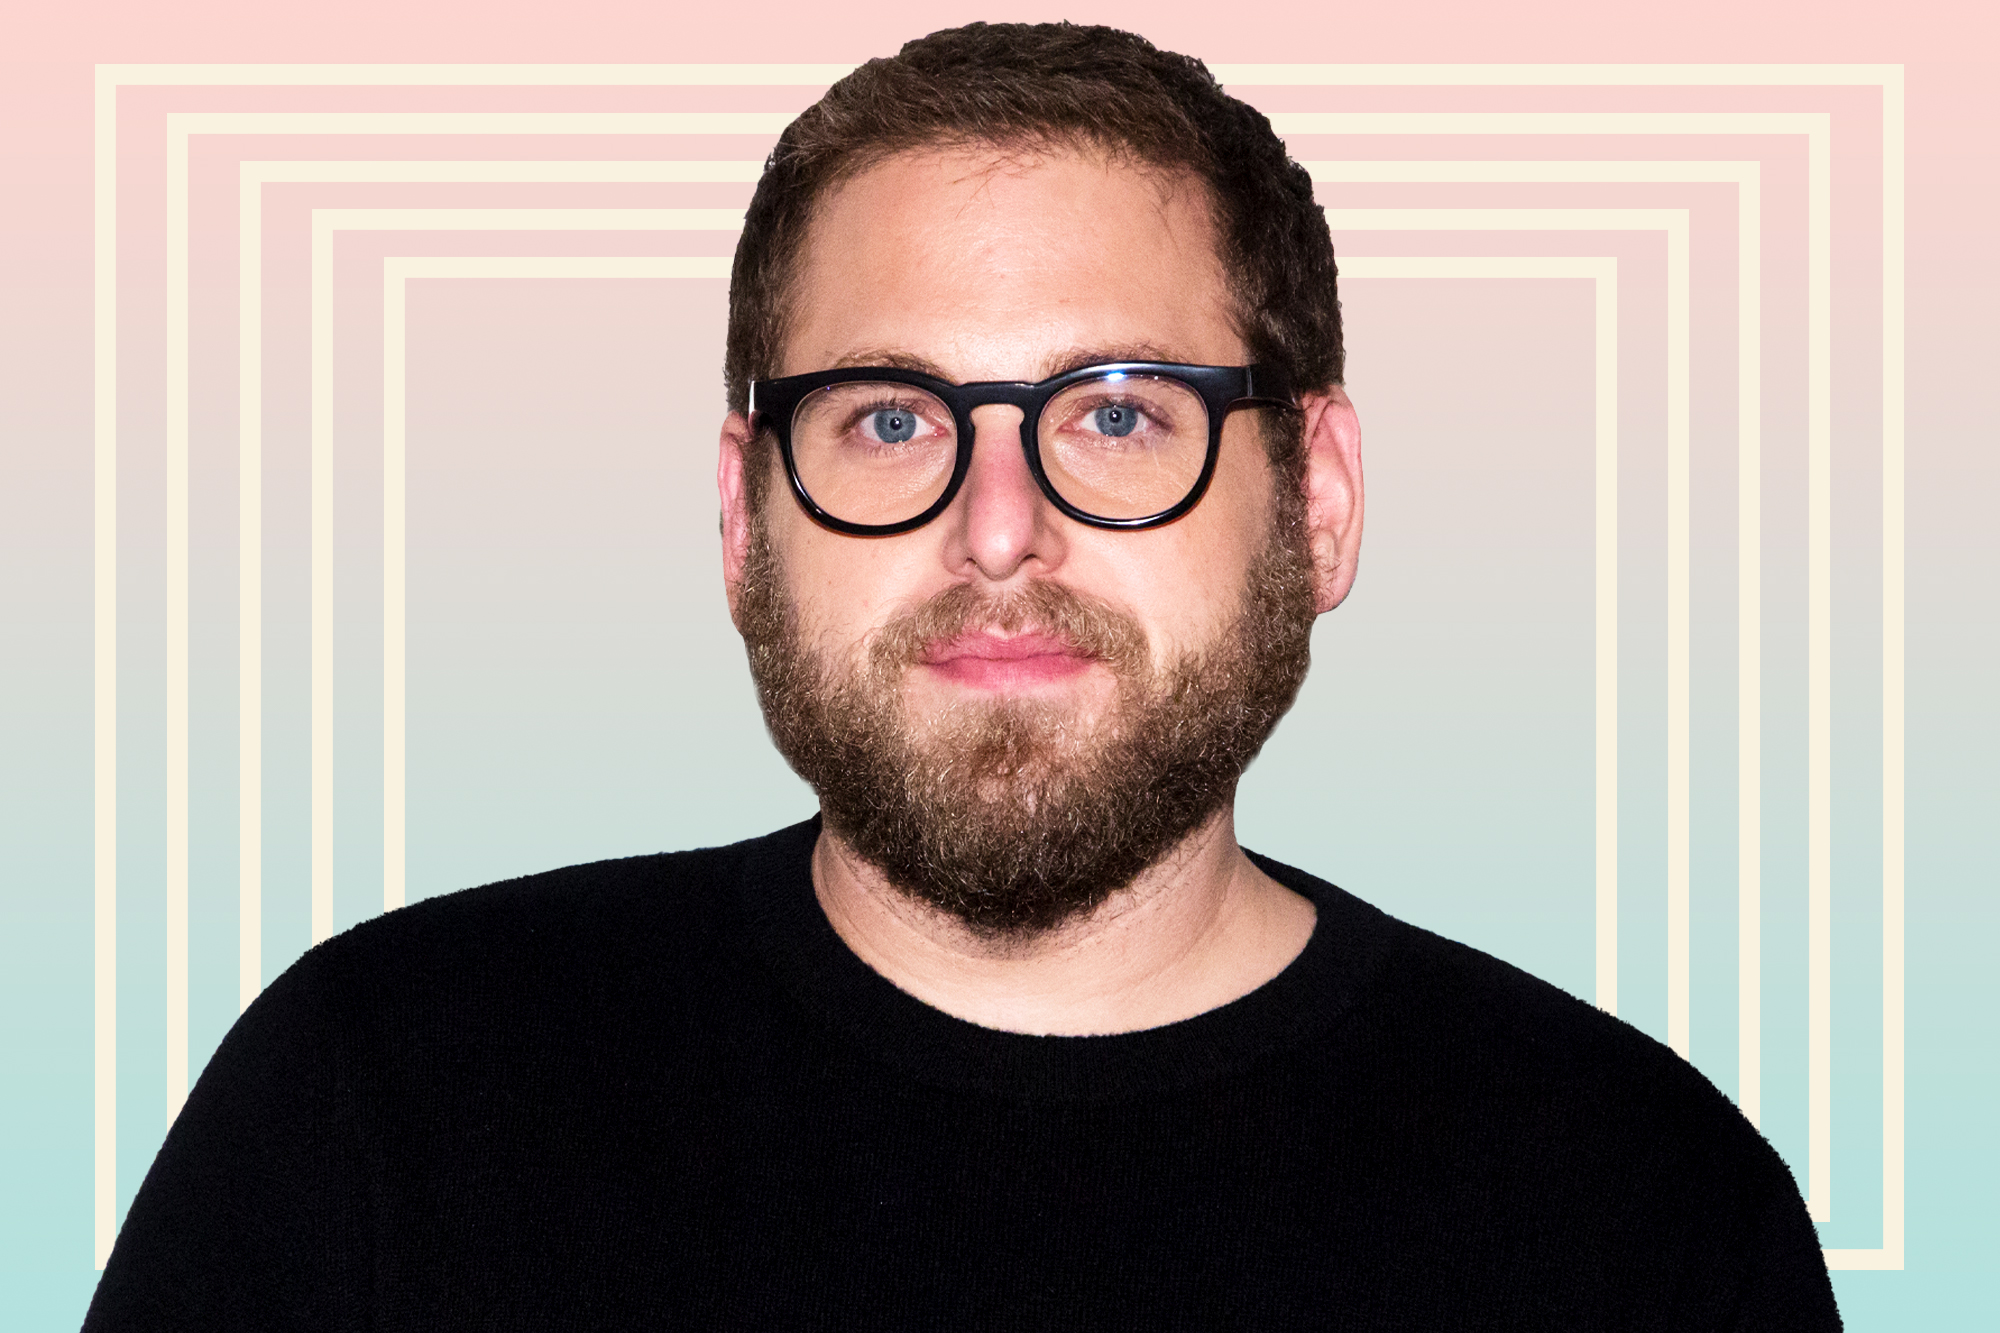 Jonah Hill on a designed background